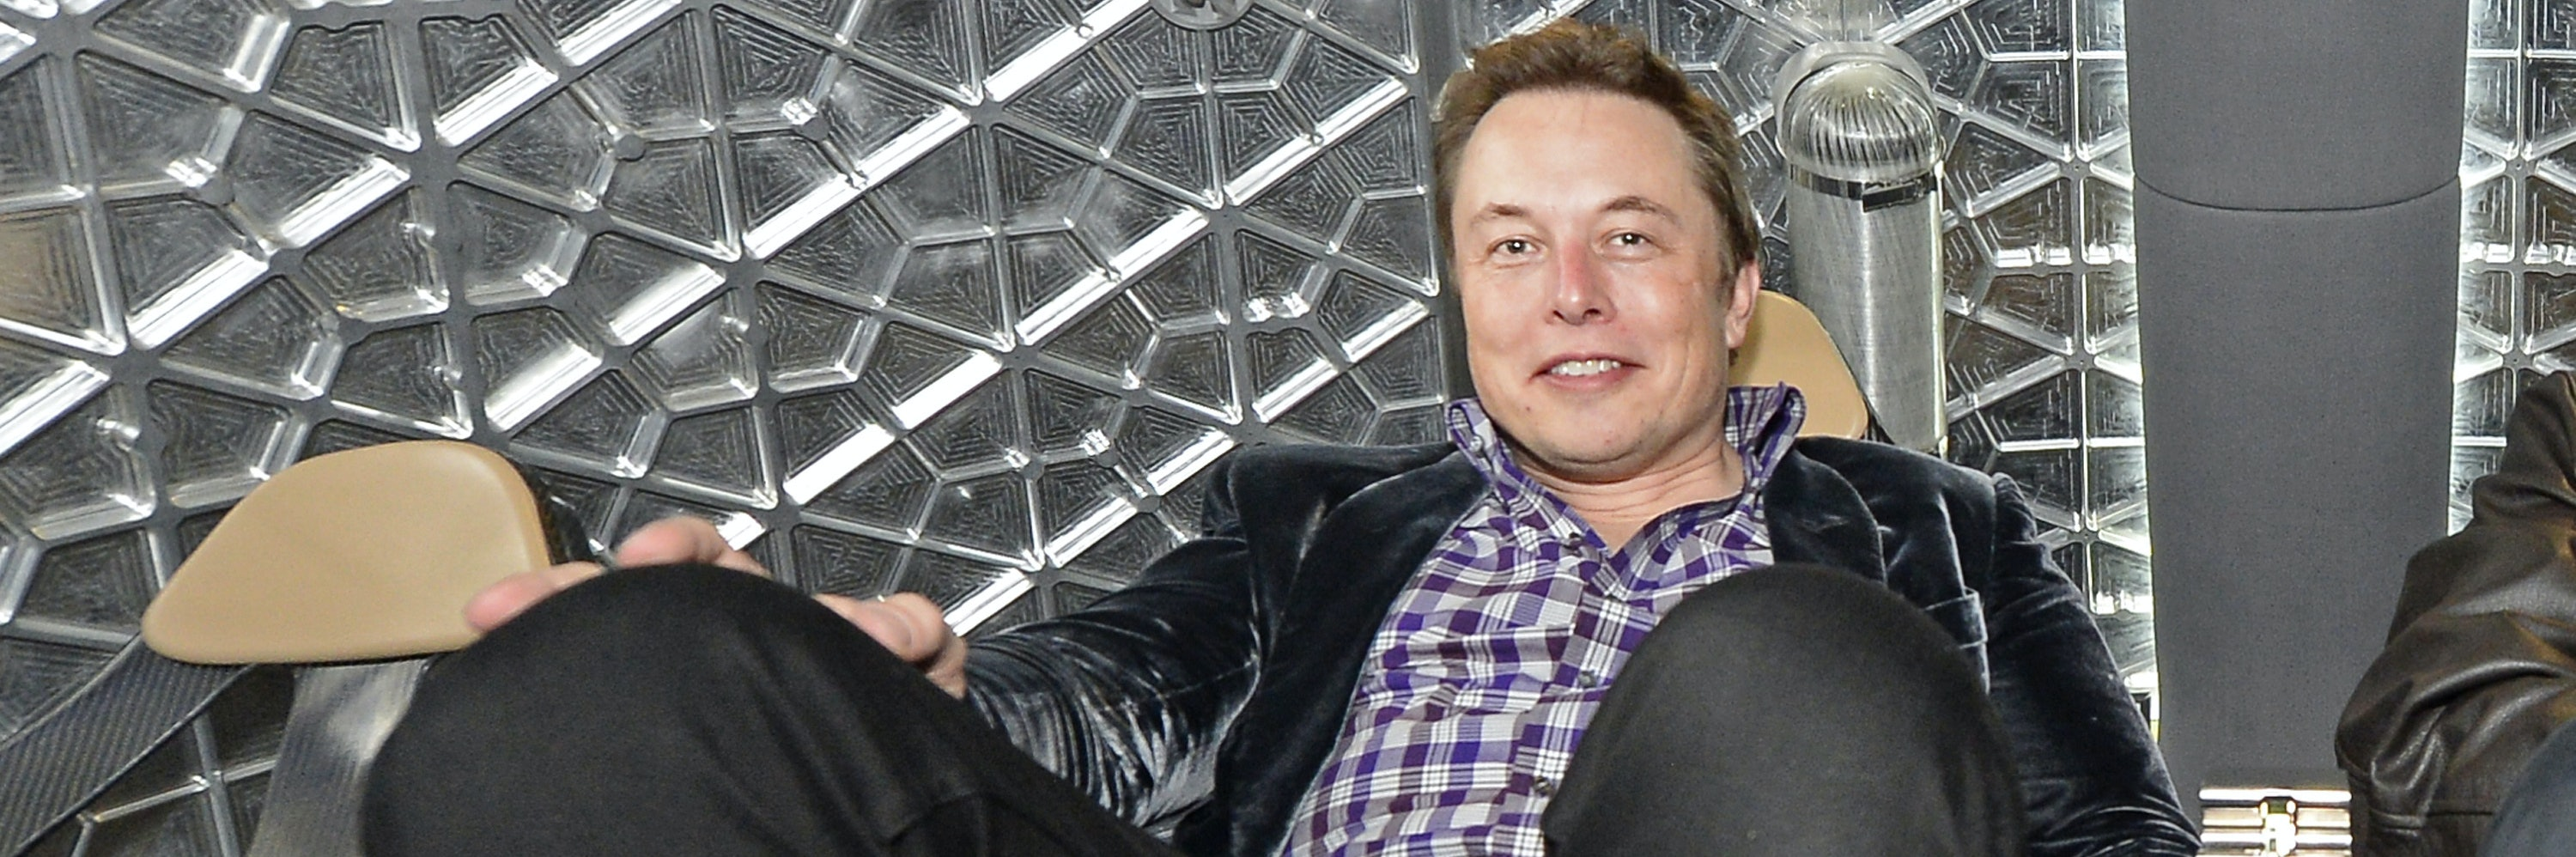 HAWTHORNE-CA-MAY 29:  SpaceX CEO Elon Musk sits inside the manned capsule Dragon V2 after unveiling it at the company's headquarters on May 29, 2014, in Hawthorne, California. The private spaceflight company has been flying unmanned capsules to the Space Station delivering cargo for the past two years. The Dragon V2 manned spacecraft will ferry up to seven astronauts to low-Earth orbit. (Photo by Kevork Djansezian/Getty Images)